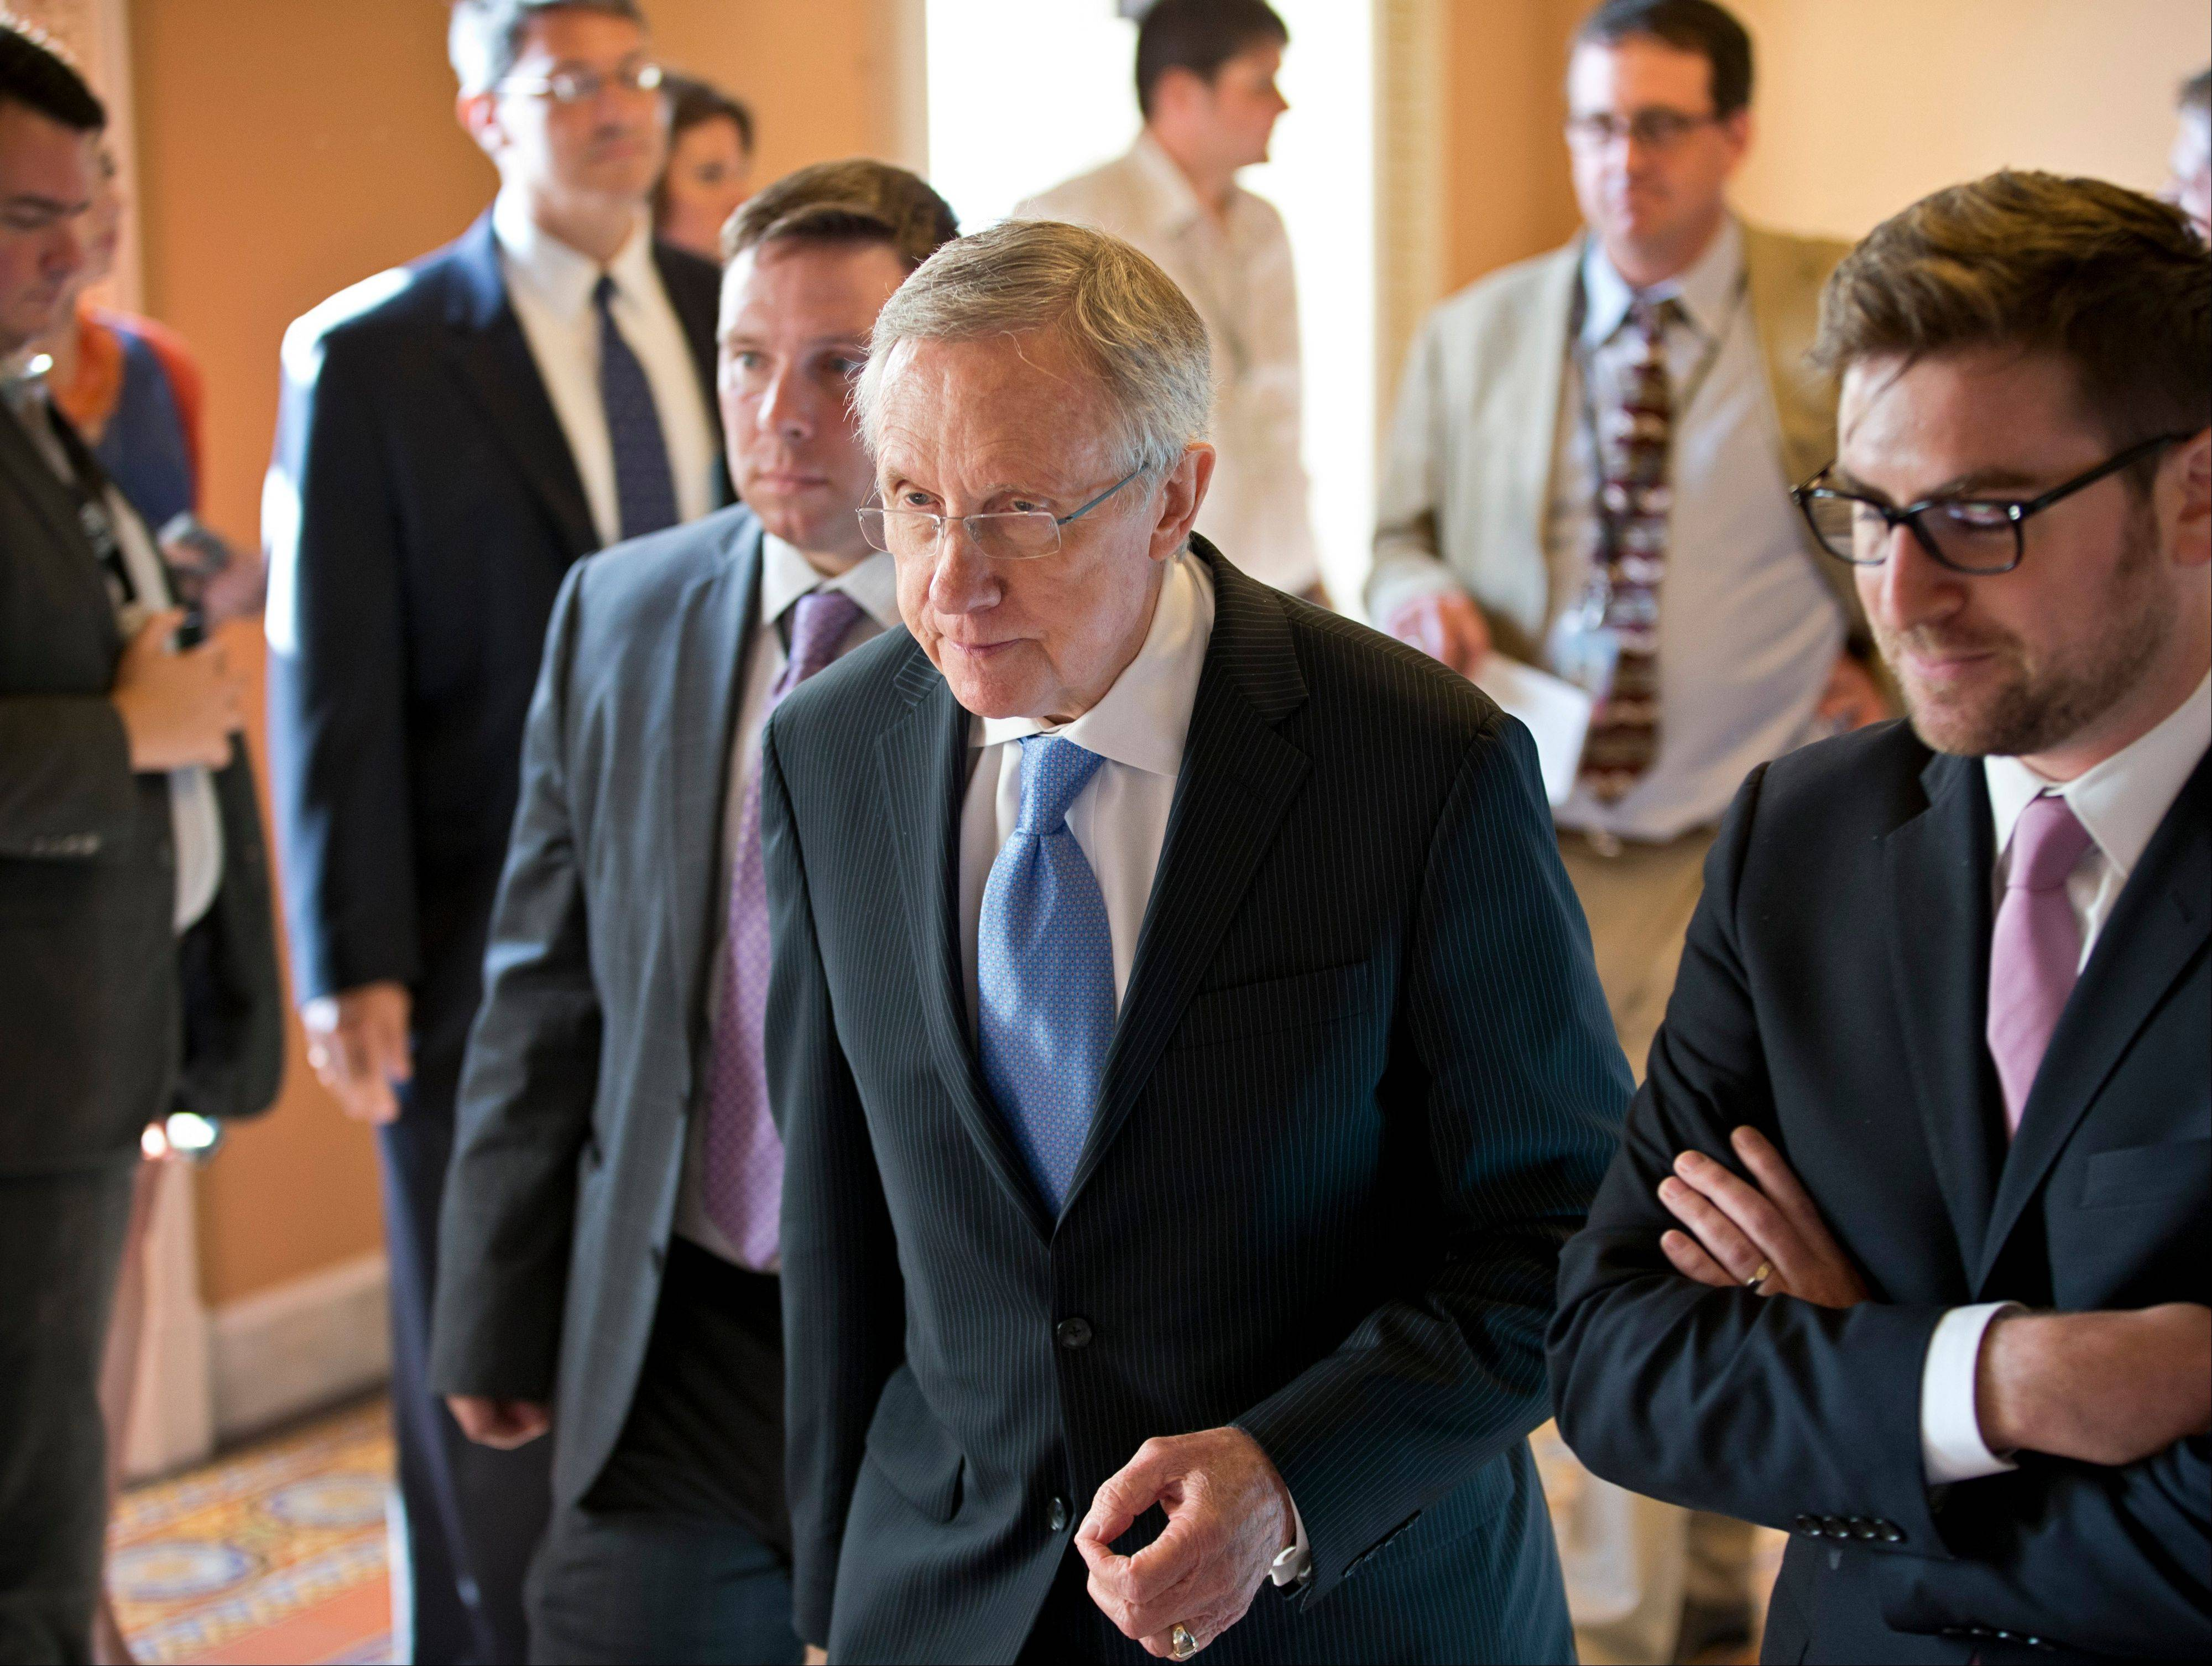 Senate Majority Leader Harry Reid, center, walks to closed-door meeting in the Old Senate Chamber for a showdown over presidential nominees that have been blocked by a GOP filibuster, at the Capitol in Washington, Monday.